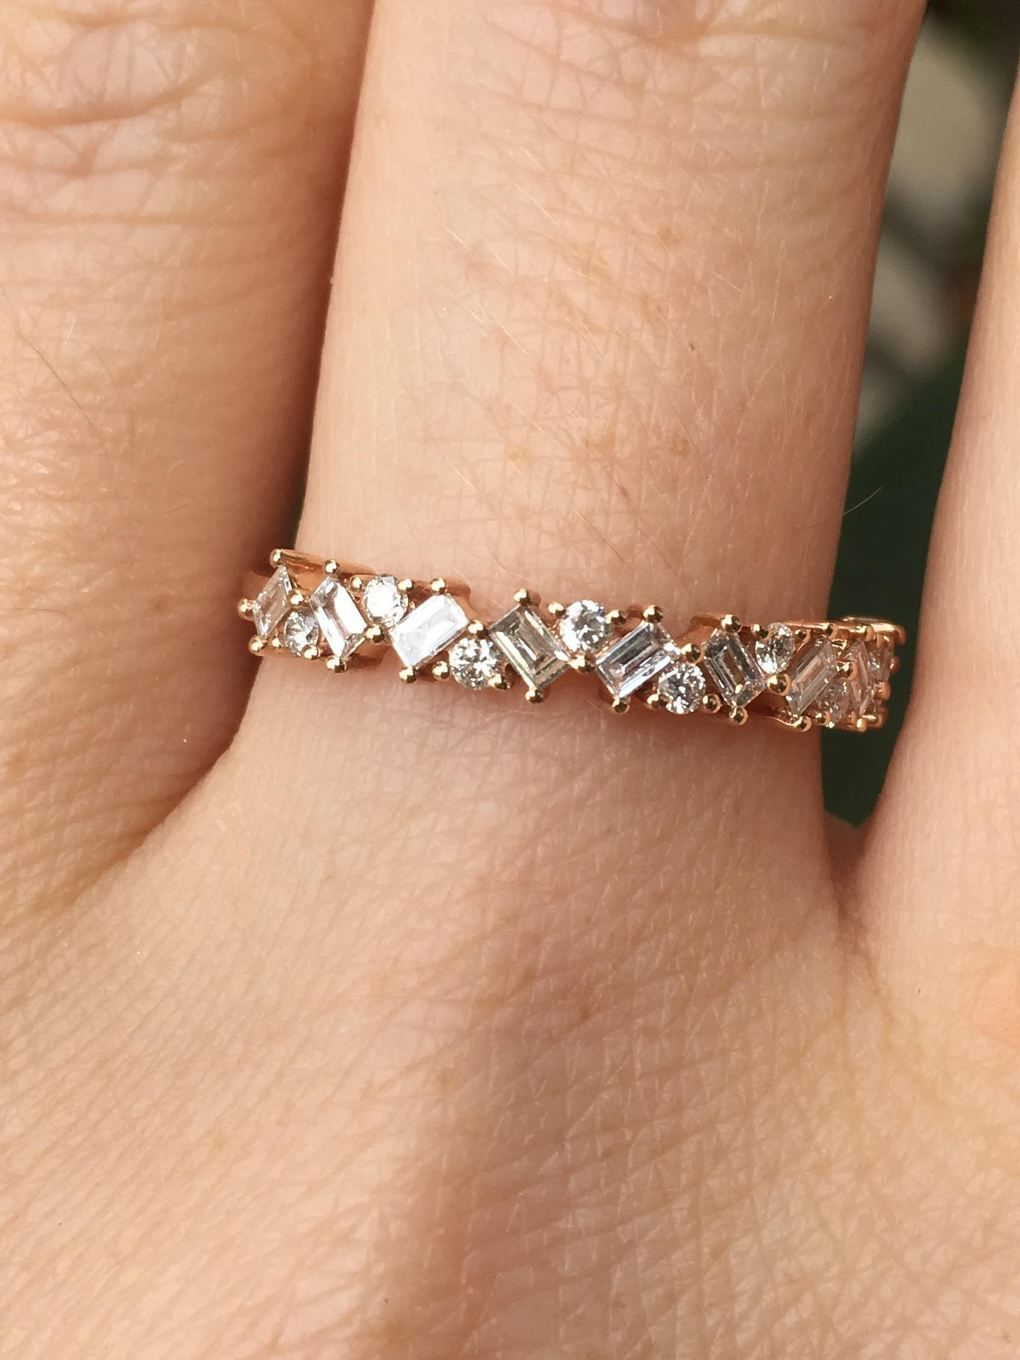 Staggered Diamond Baguette Round Half Eternity Nina Segal Jewelry Small Diamond Rings Diamond Diamond Rings Design